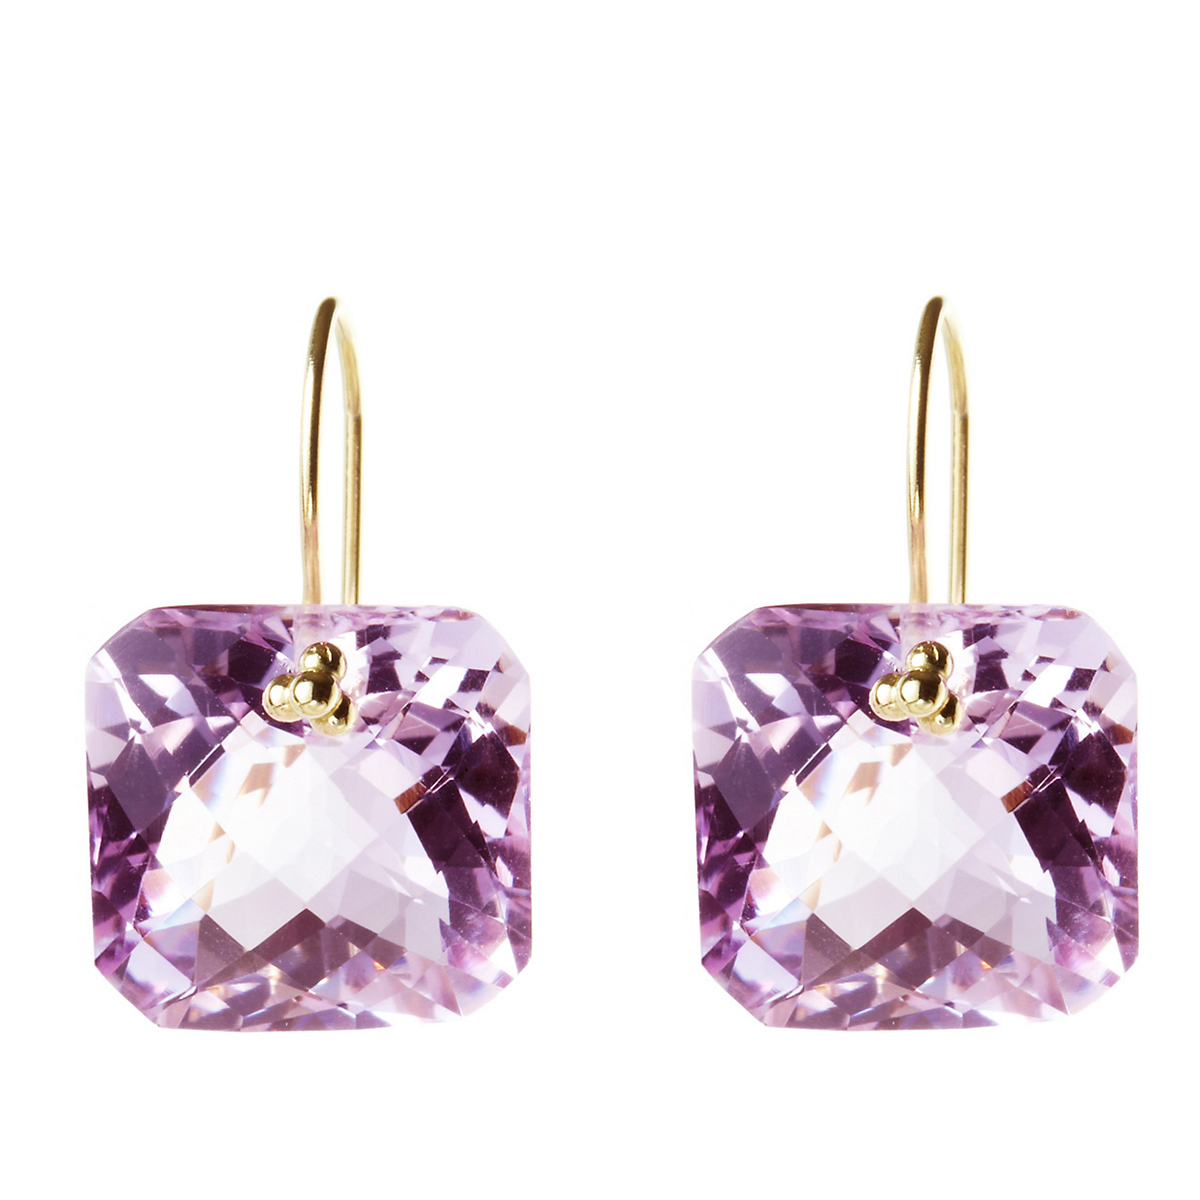 Nikki Baker Pink Amethyst Drop Earrings